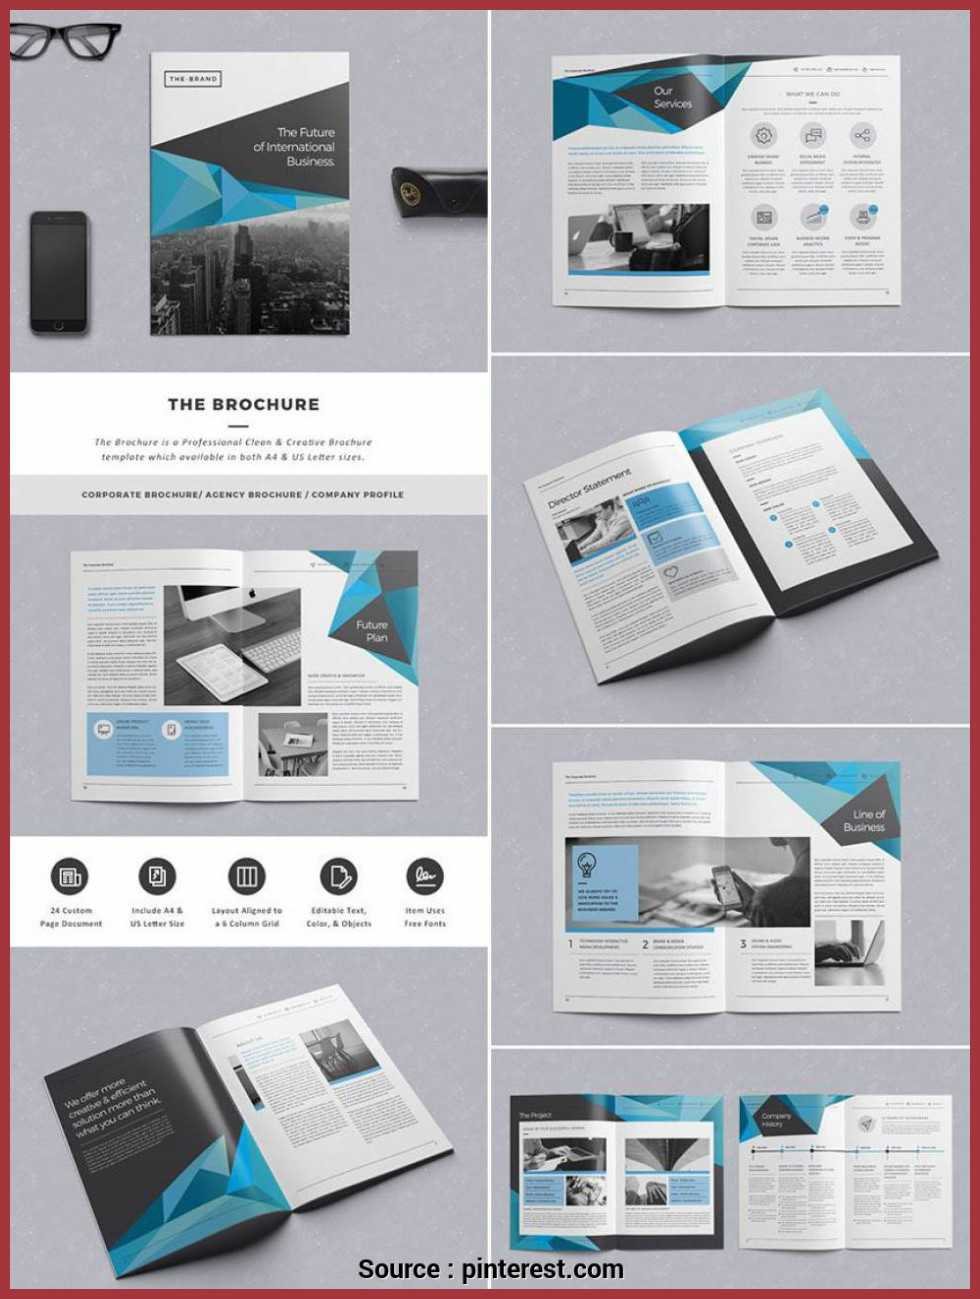 Free Free Business Flyer Templates Indesign The Brochure Inside Indesign Templates Free Download Brochure